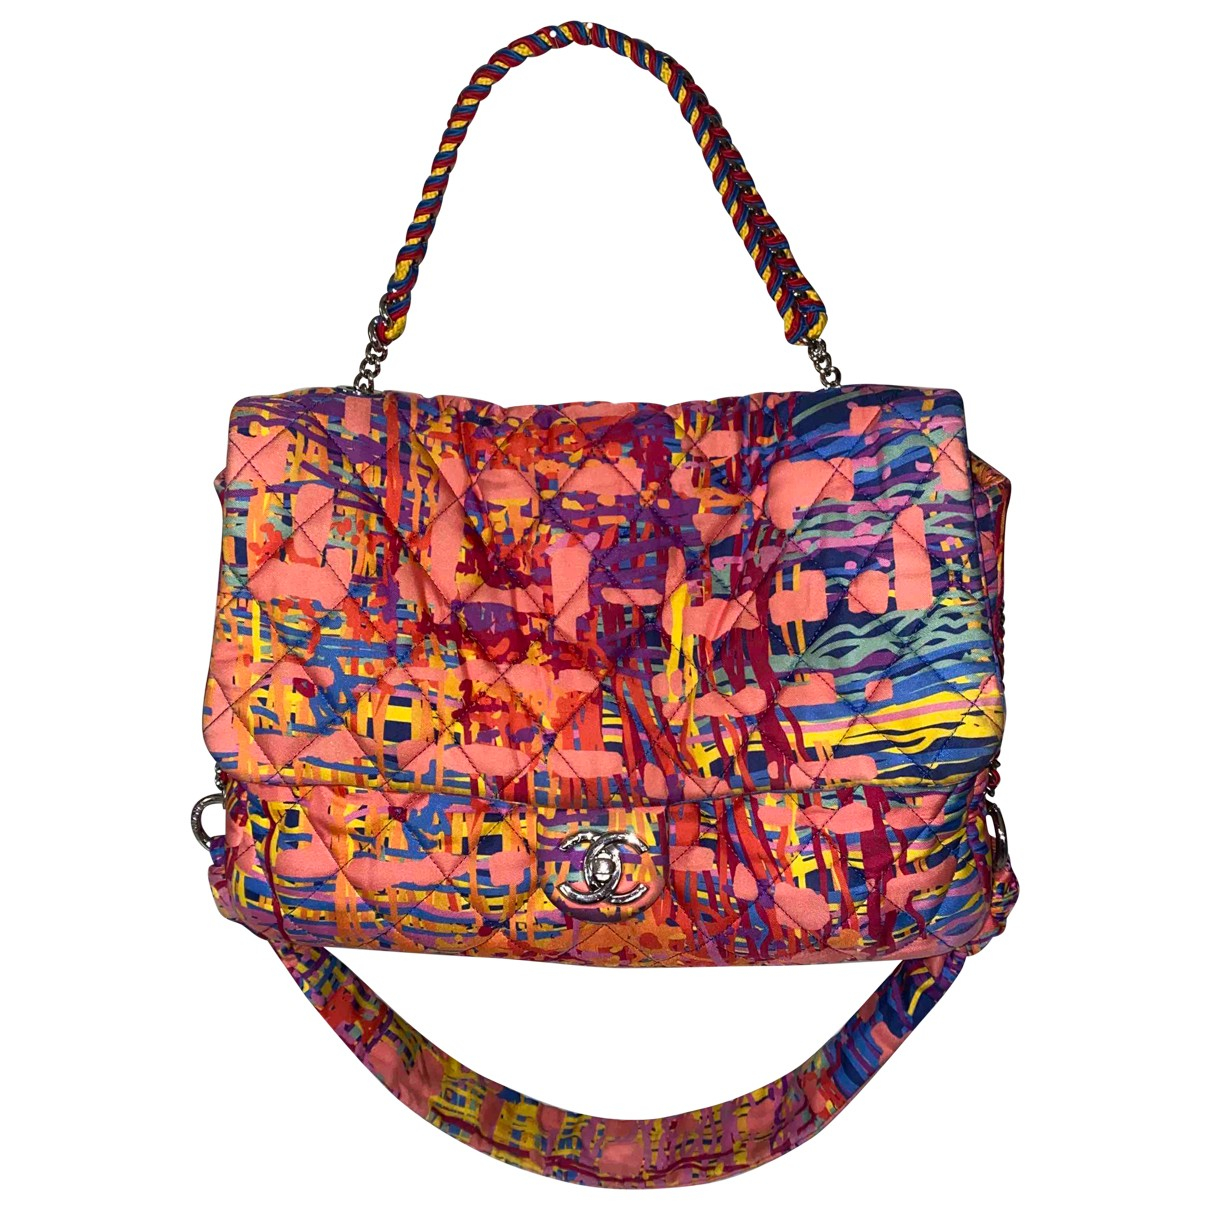 Chanel \N Multicolour Silk handbag for Women \N